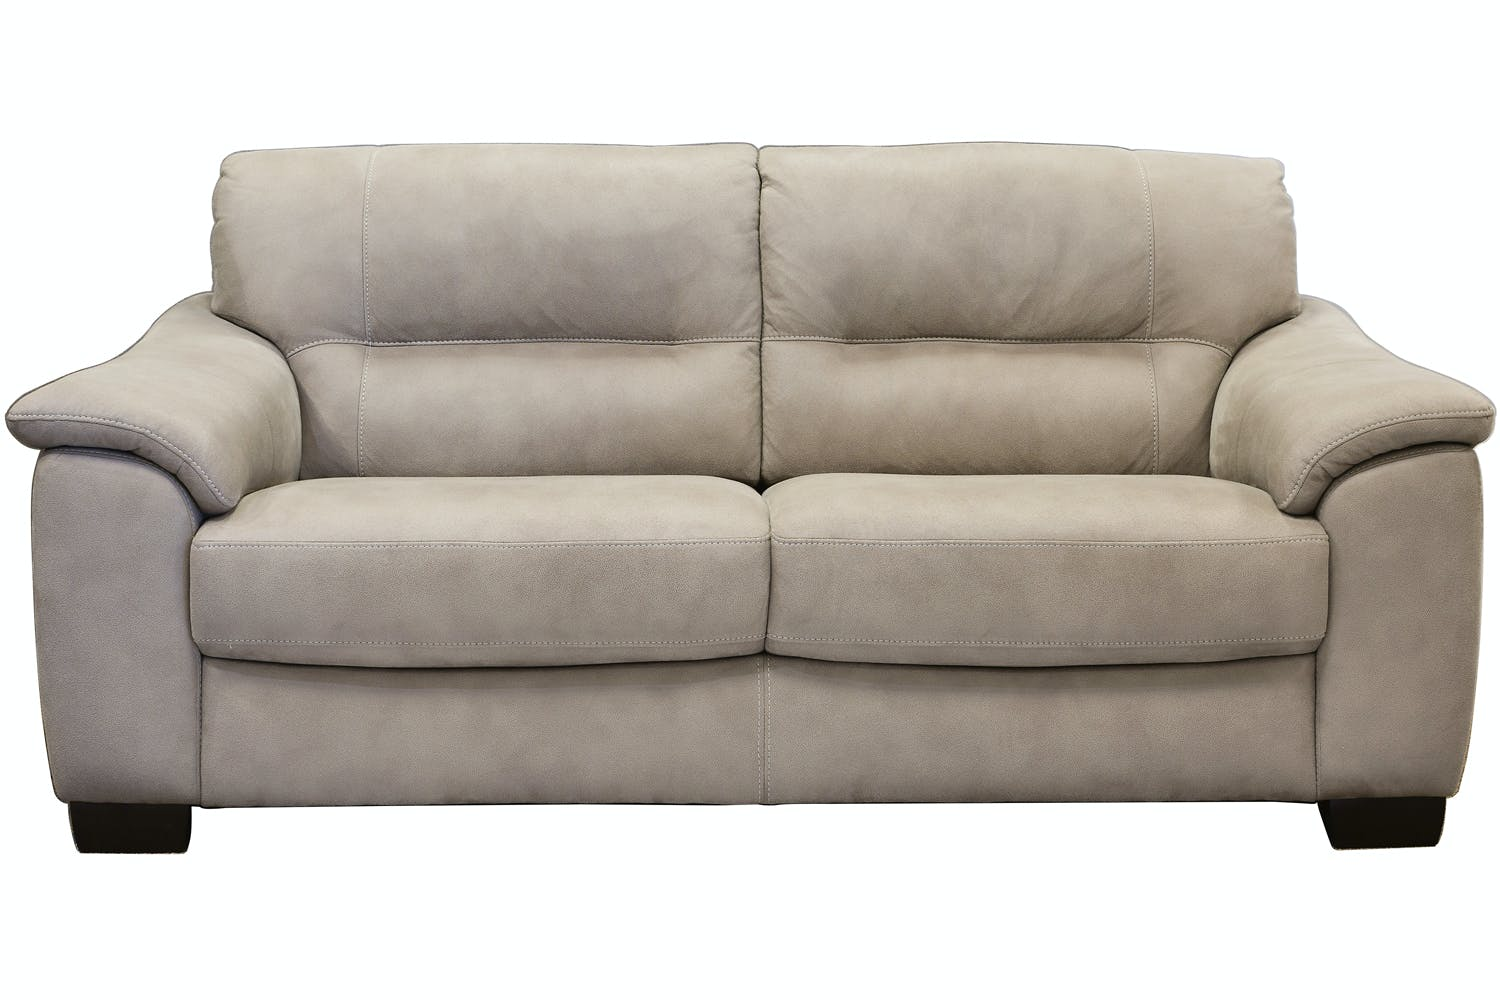 Becky 3 seater sofa harvey norman ireland for Sofa 7 seater